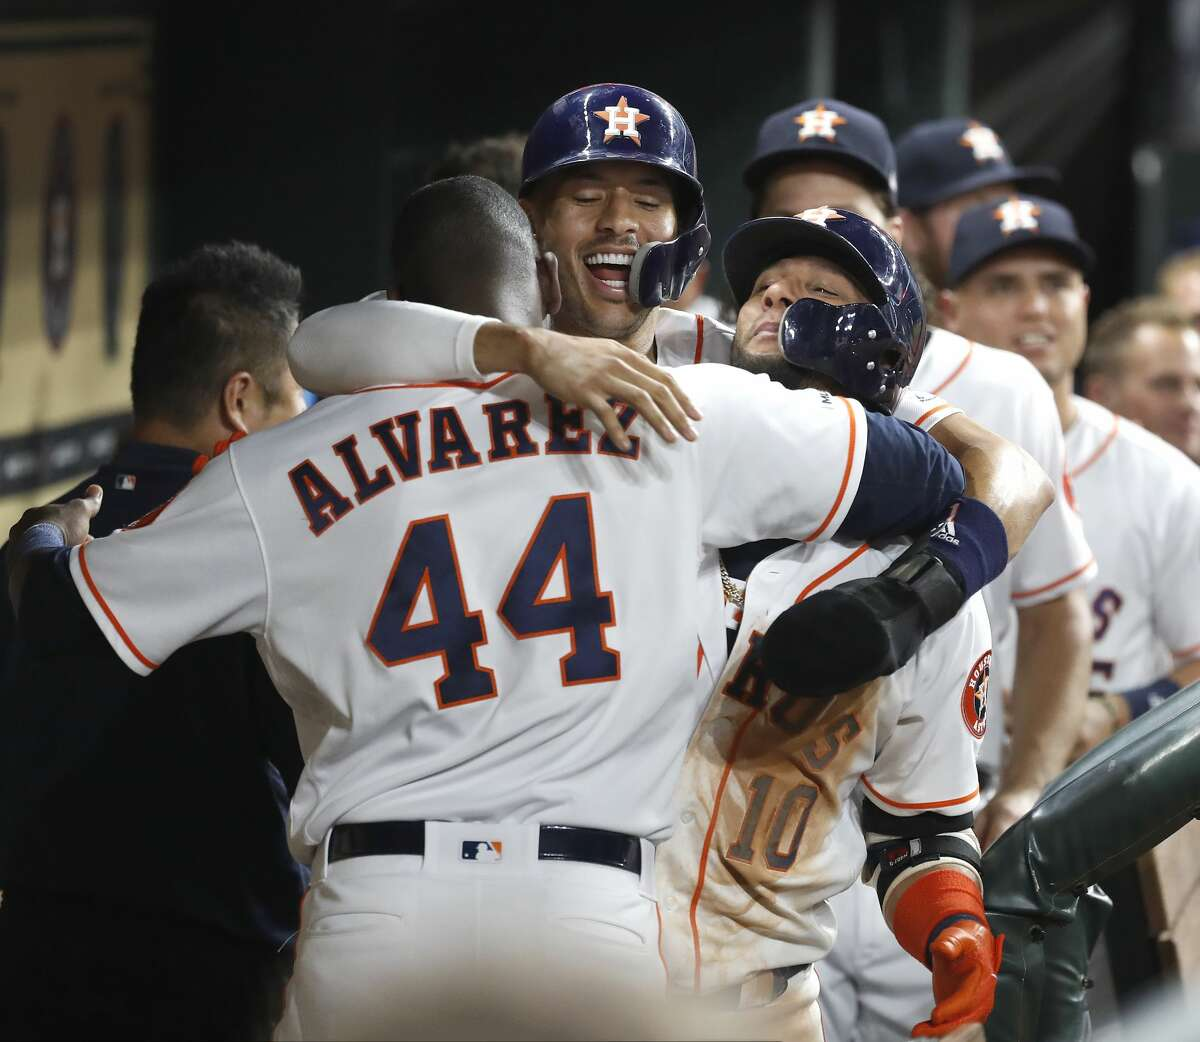 A group hug with Yordan Alvarez (44) and Carlos Correa (1) after Yuli Gurriel's second home run of the night during the seventh inning of an MLB baseball game at Minute Maid Park, Tuesday, August 6, 2019.